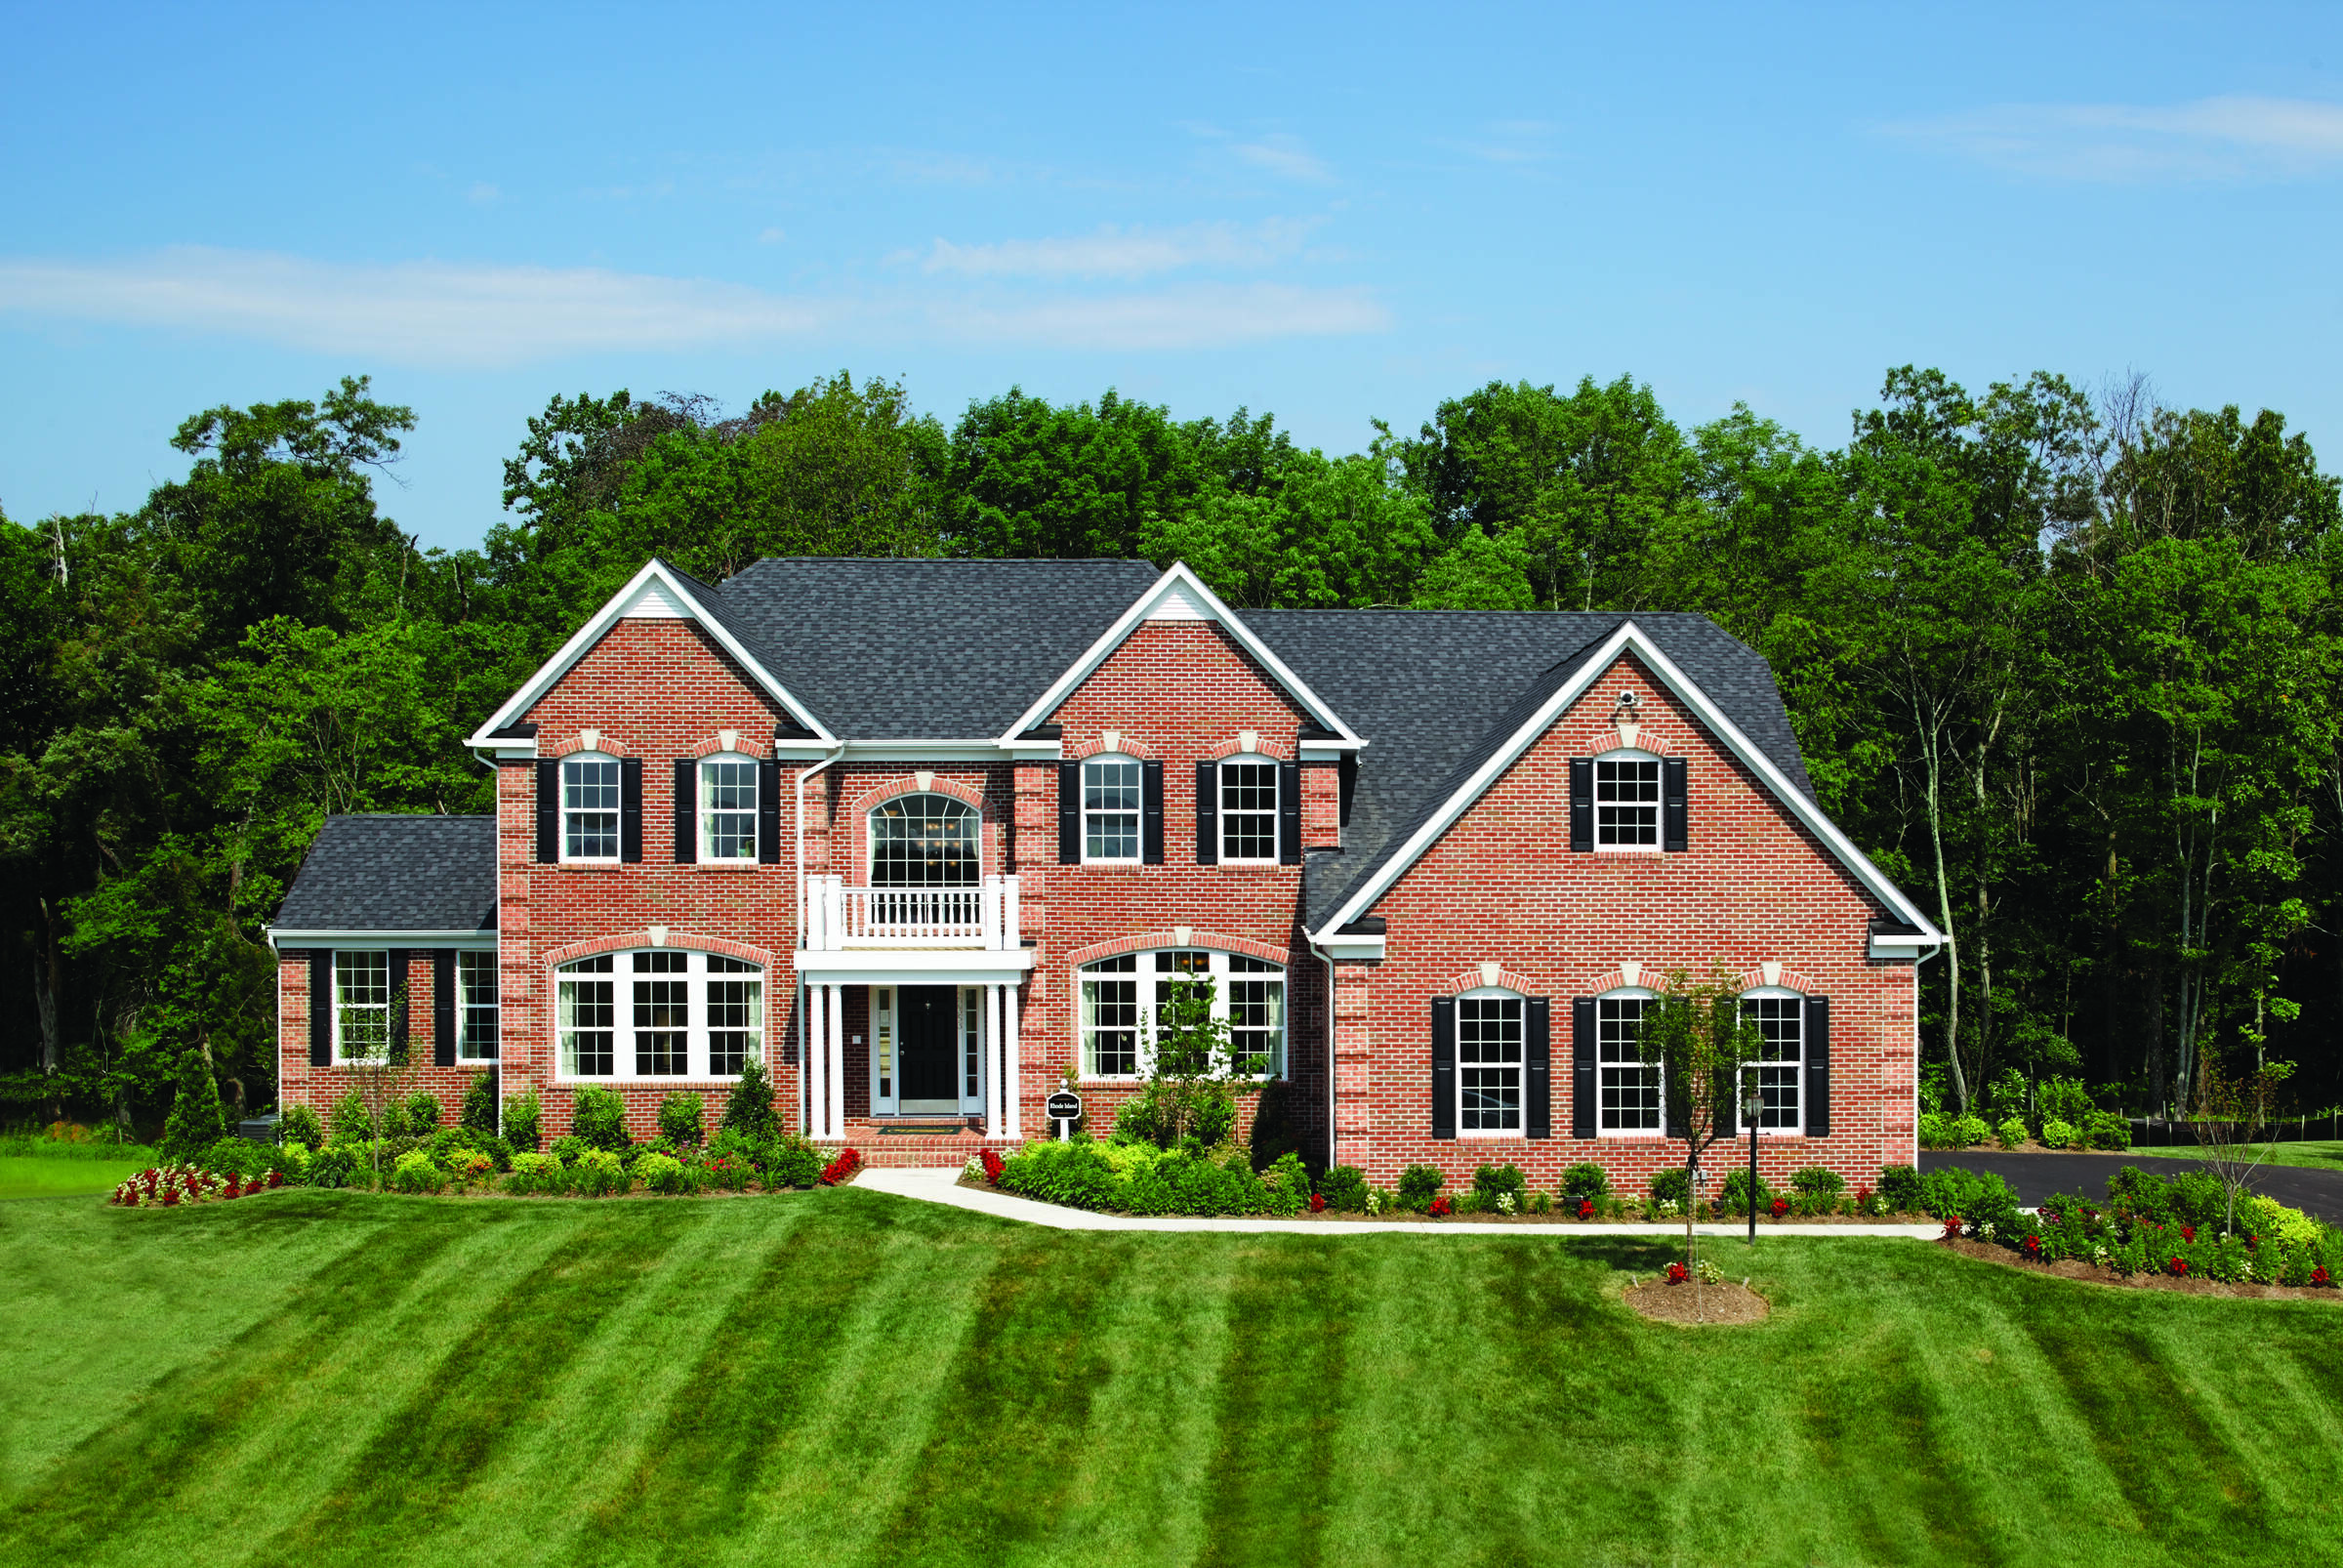 rhode island new homes in maryland - New Homes